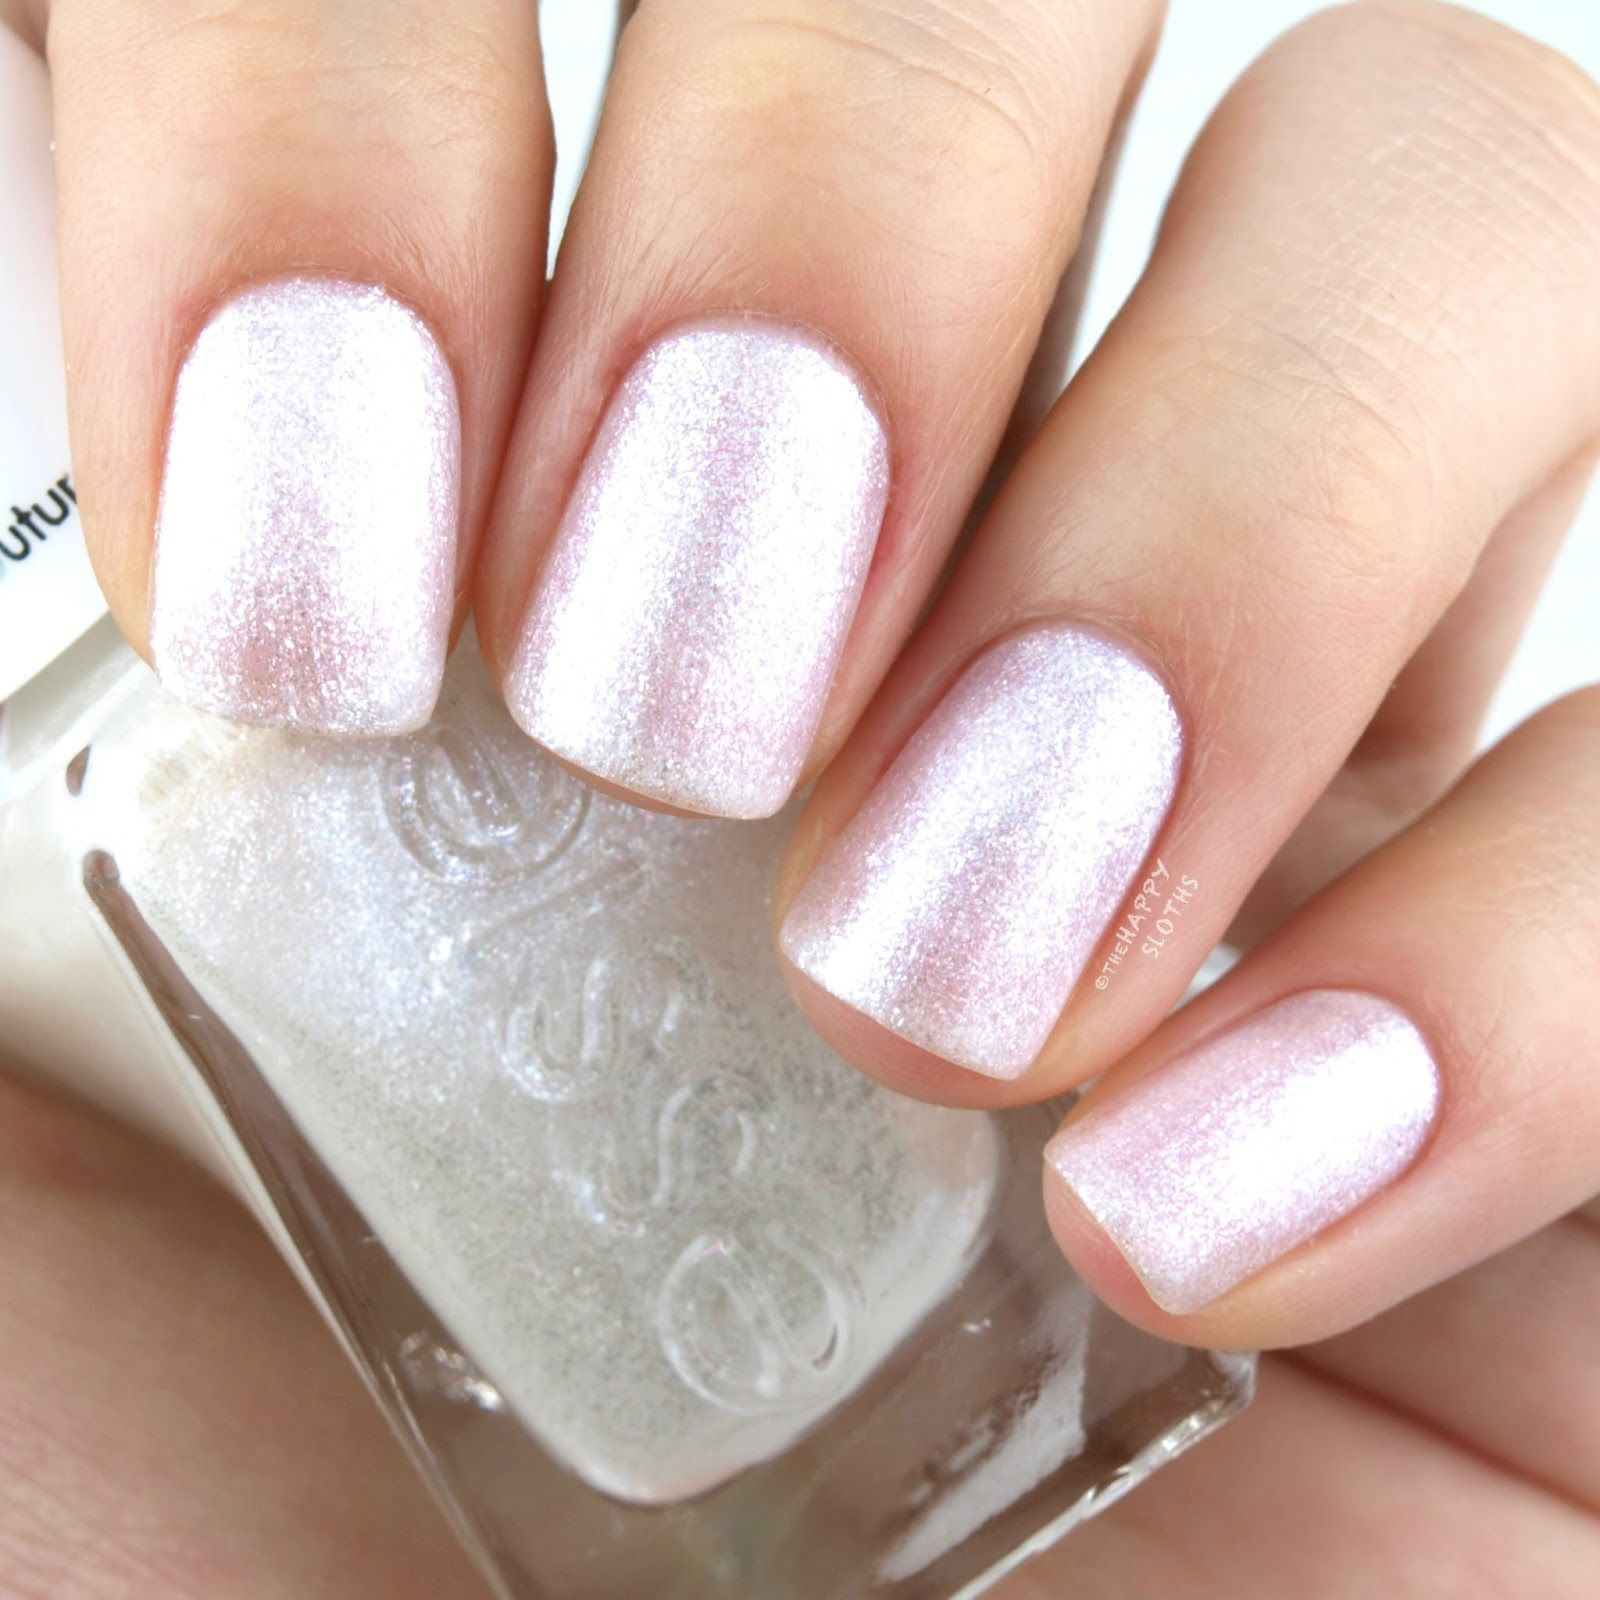 Essie Gel Couture Bridal 2017 Collection in \